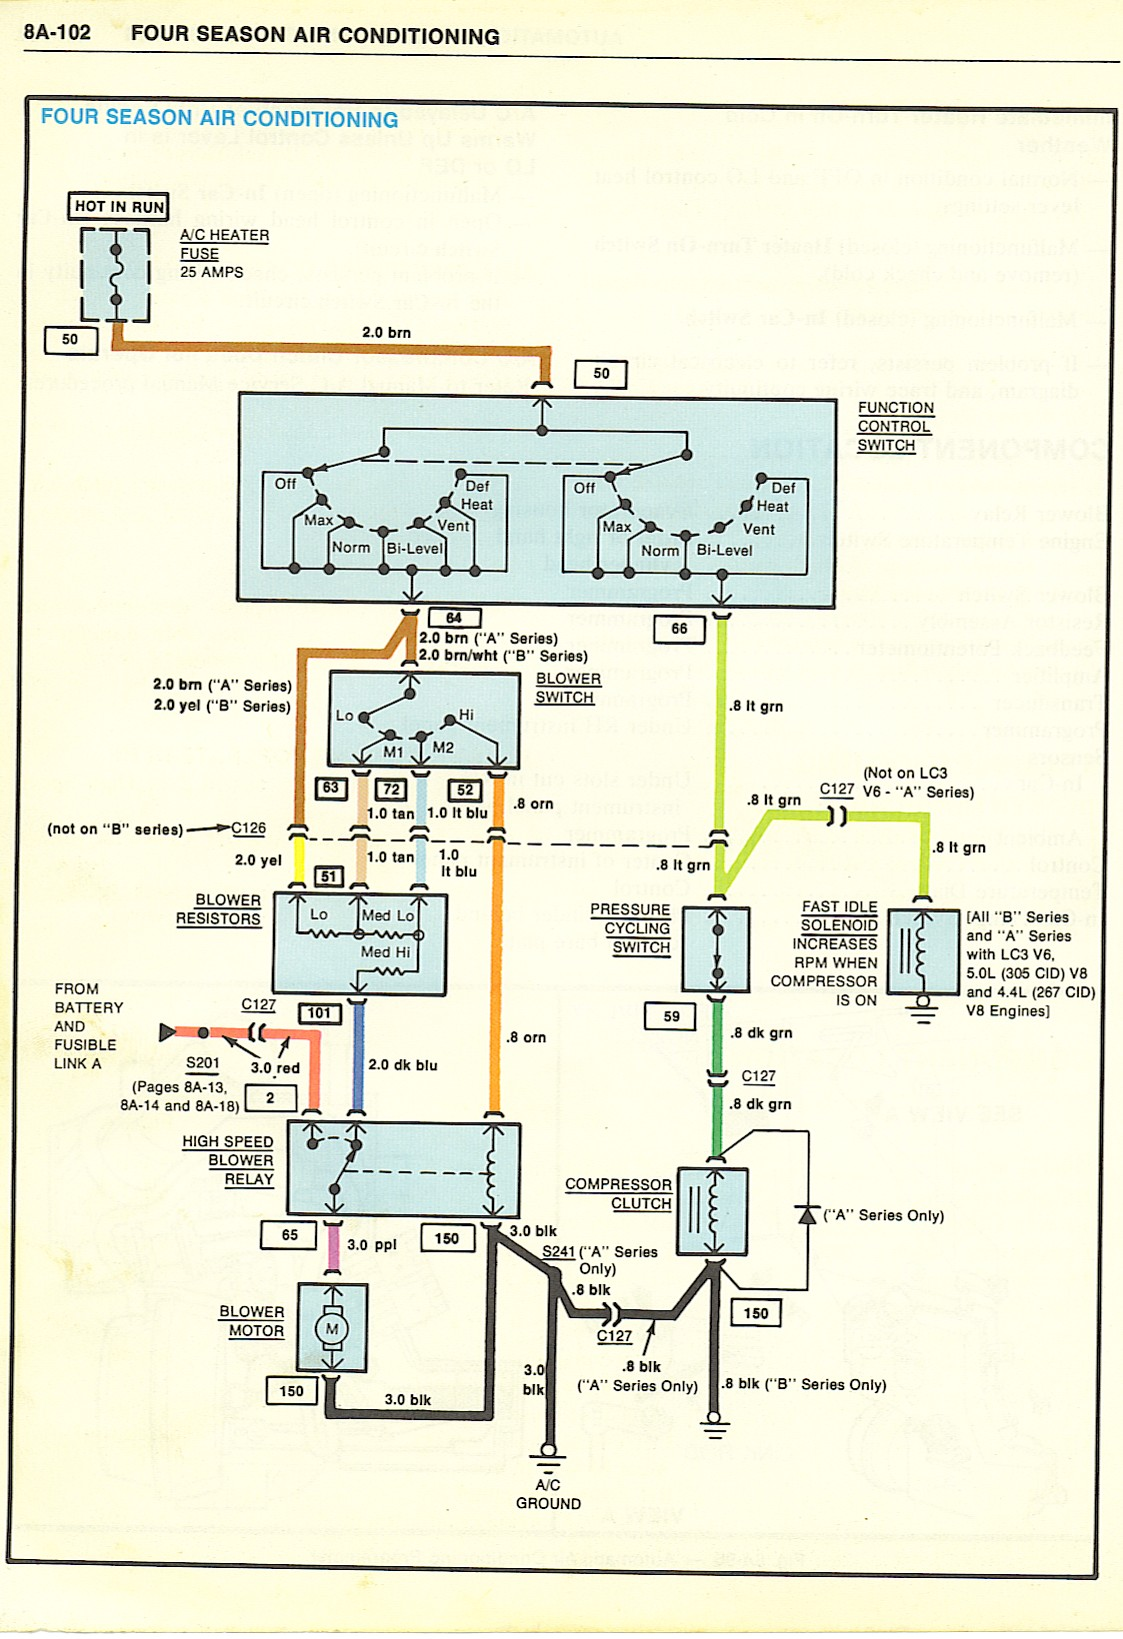 G Tach Wiring Diagram - Wiring Diagram Schemes Indica Car Wiring Diagram on 3930 ford tractor parts diagrams, club car manuals and diagrams, custom stereo diagrams, car vacuum diagrams, dodge ram vacuum diagrams, chevy truck diagrams, car starting system, car battery, pinout diagrams, car exhaust, car schematics, autozone repair diagrams, factory car stereo diagrams, car motors diagrams, car door lock diagram, club car manual wire diagrams, battery diagrams, car electrical, car parts diagrams, 7.3 ford diesel diagrams,